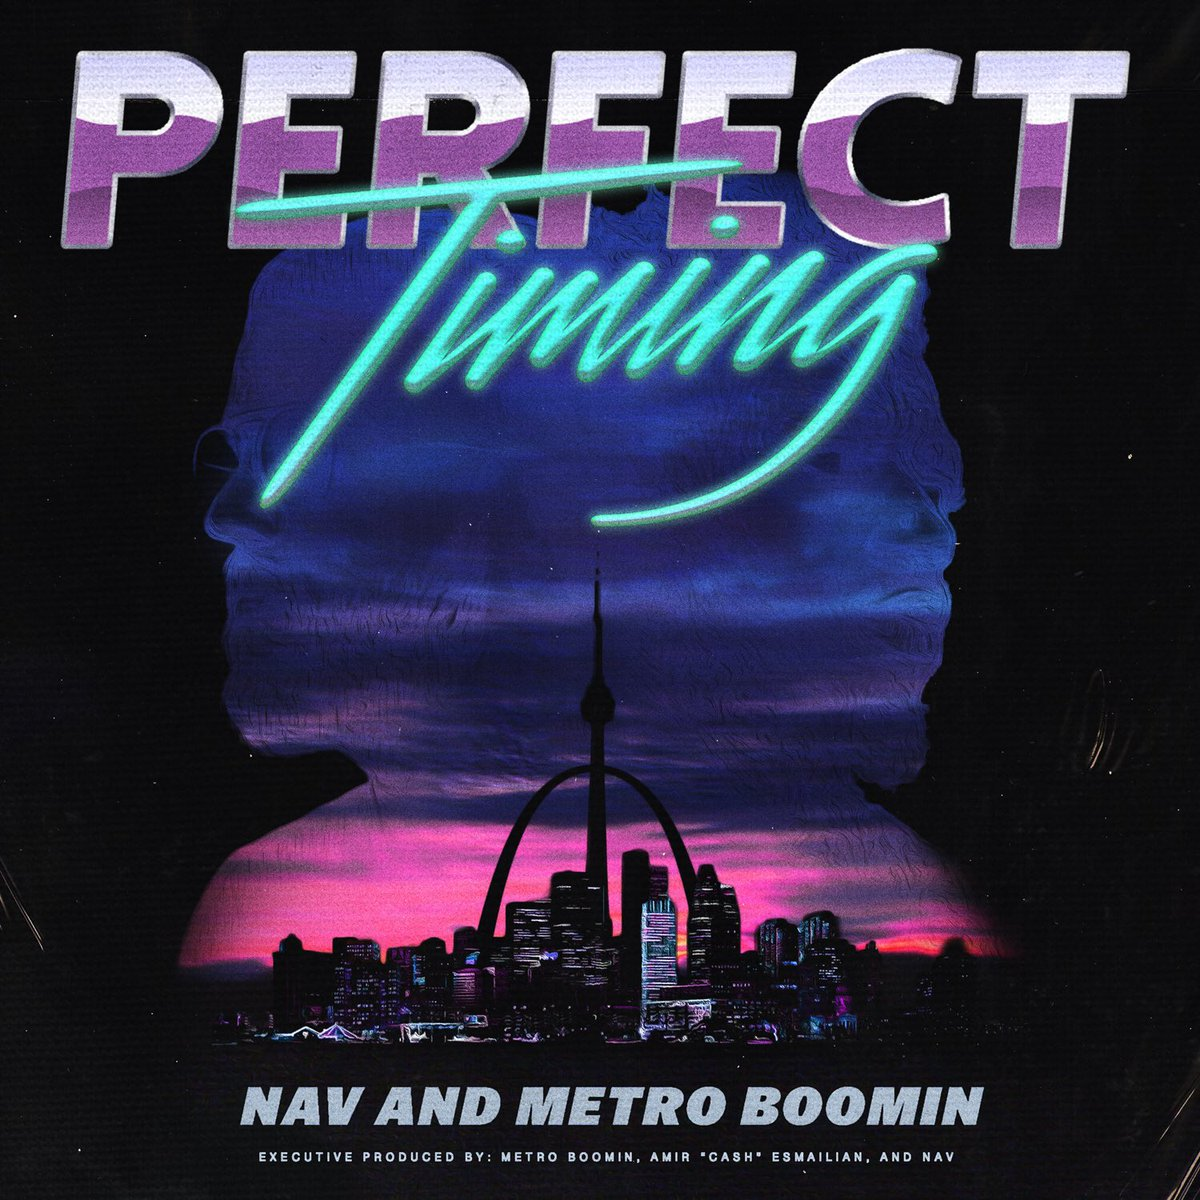 Lovable Following Up Ir Singles Nav Metroboomin Are Here Ir Joint Album Project Consistsof Stream Download Nav Metro Joint Album Nav Album Download Zip File Nav Album Download inspiration Nav Album Download